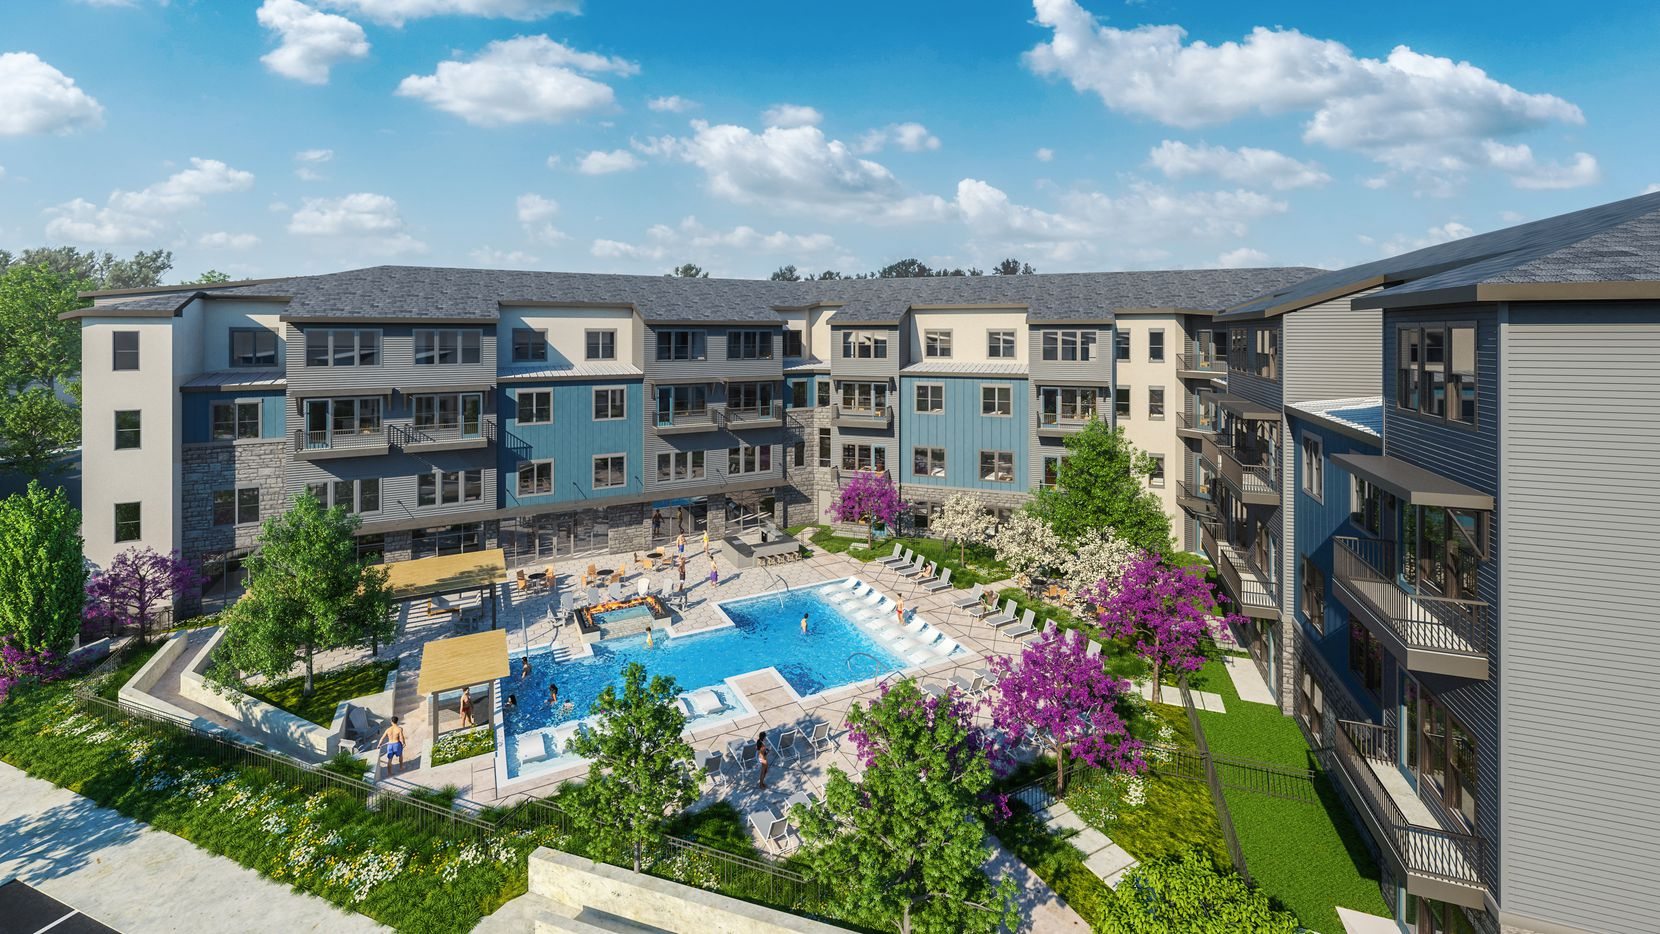 The Jefferson Texas Plaza apartments will have 282 units.